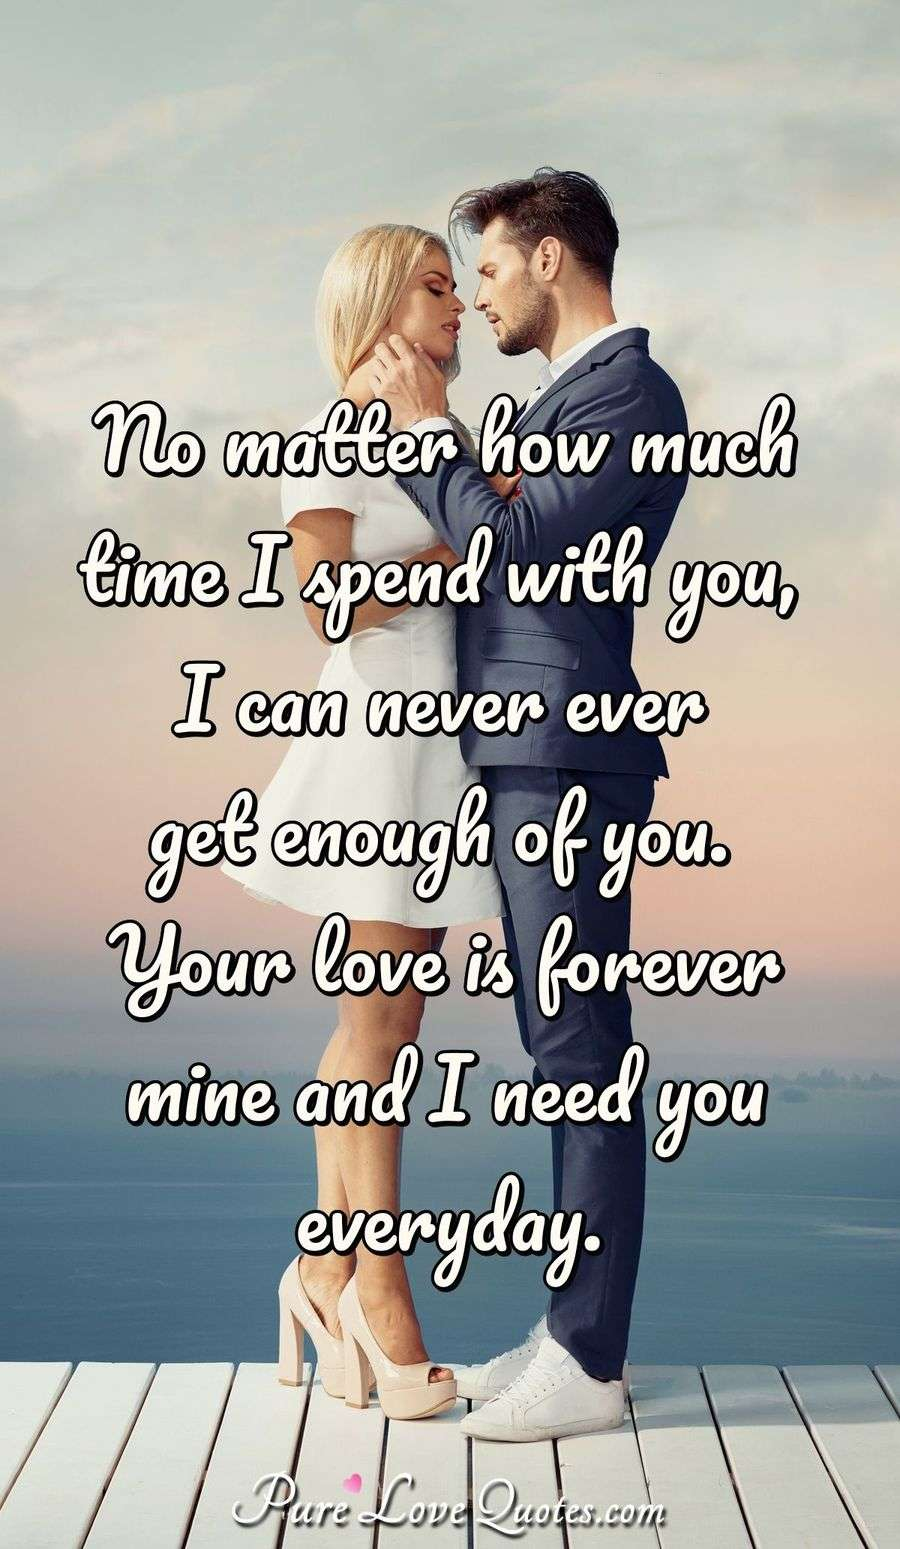 I Need You Quotes For Him: No Matter How Much Time I Spend With You, I Can Never Ever